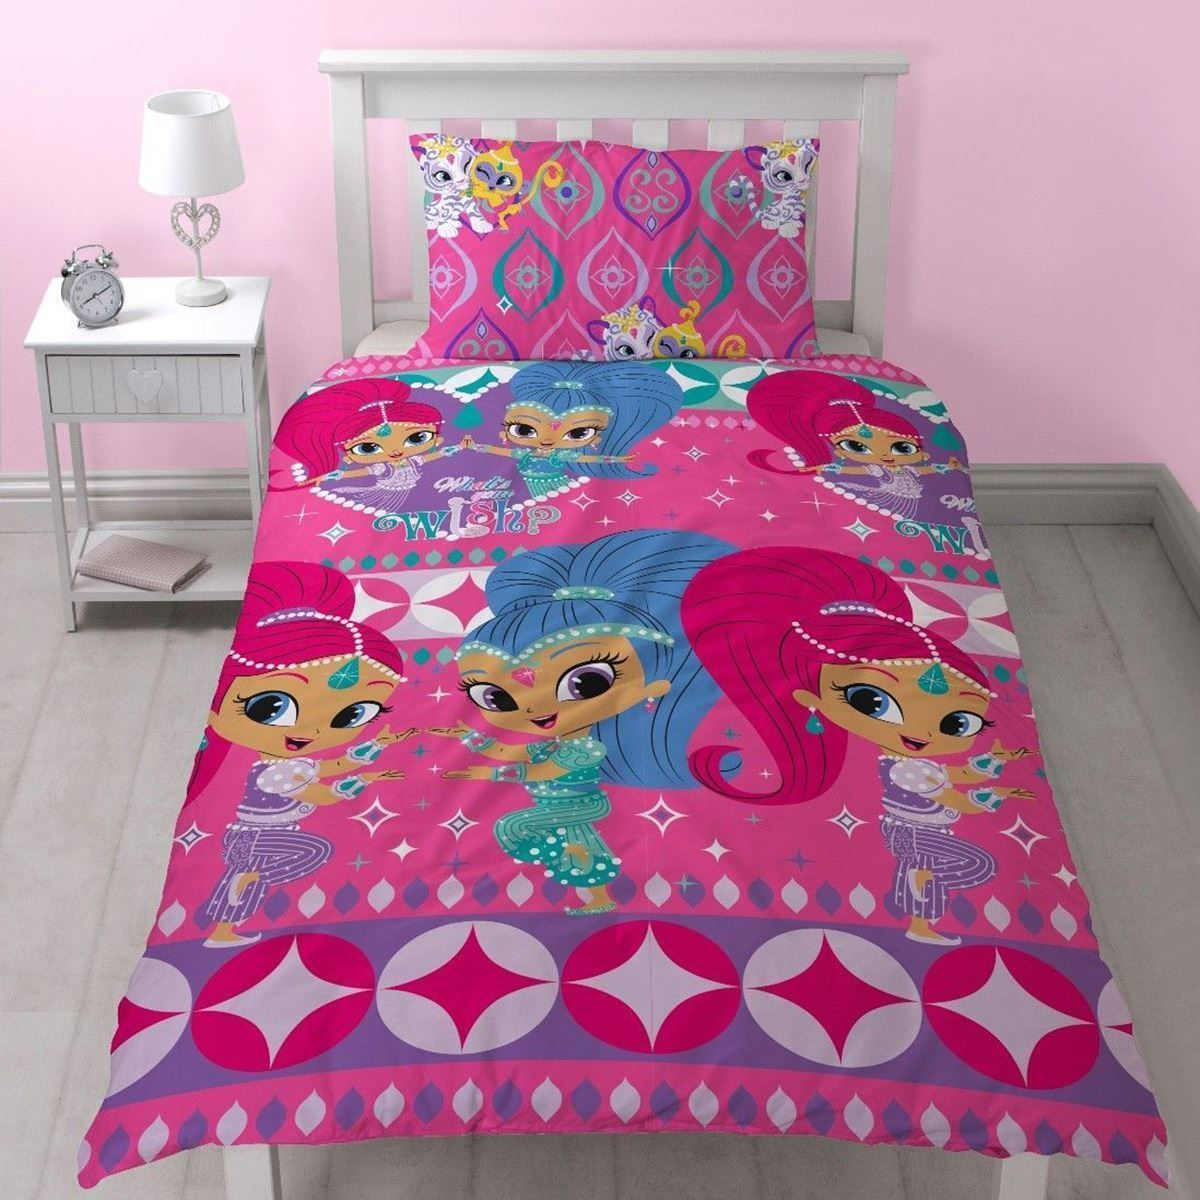 Shimmer & Shine Zahramay Single Quilt cover set. Available at Kids ...